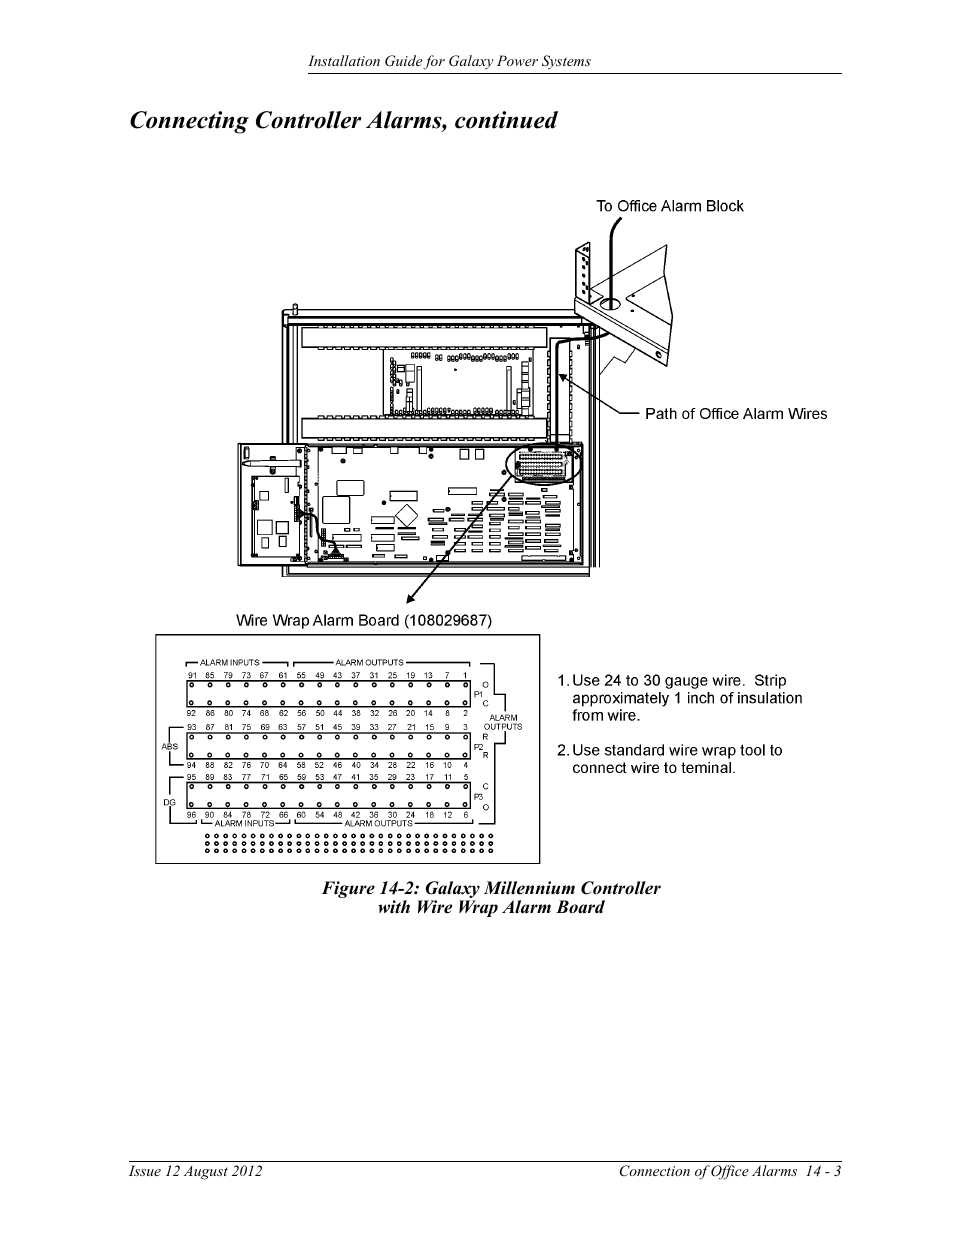 medium resolution of figure 14 2 galaxy millennium controller with wire wrap alarm board connecting controller alarms continued ge industrial solutions galaxy power